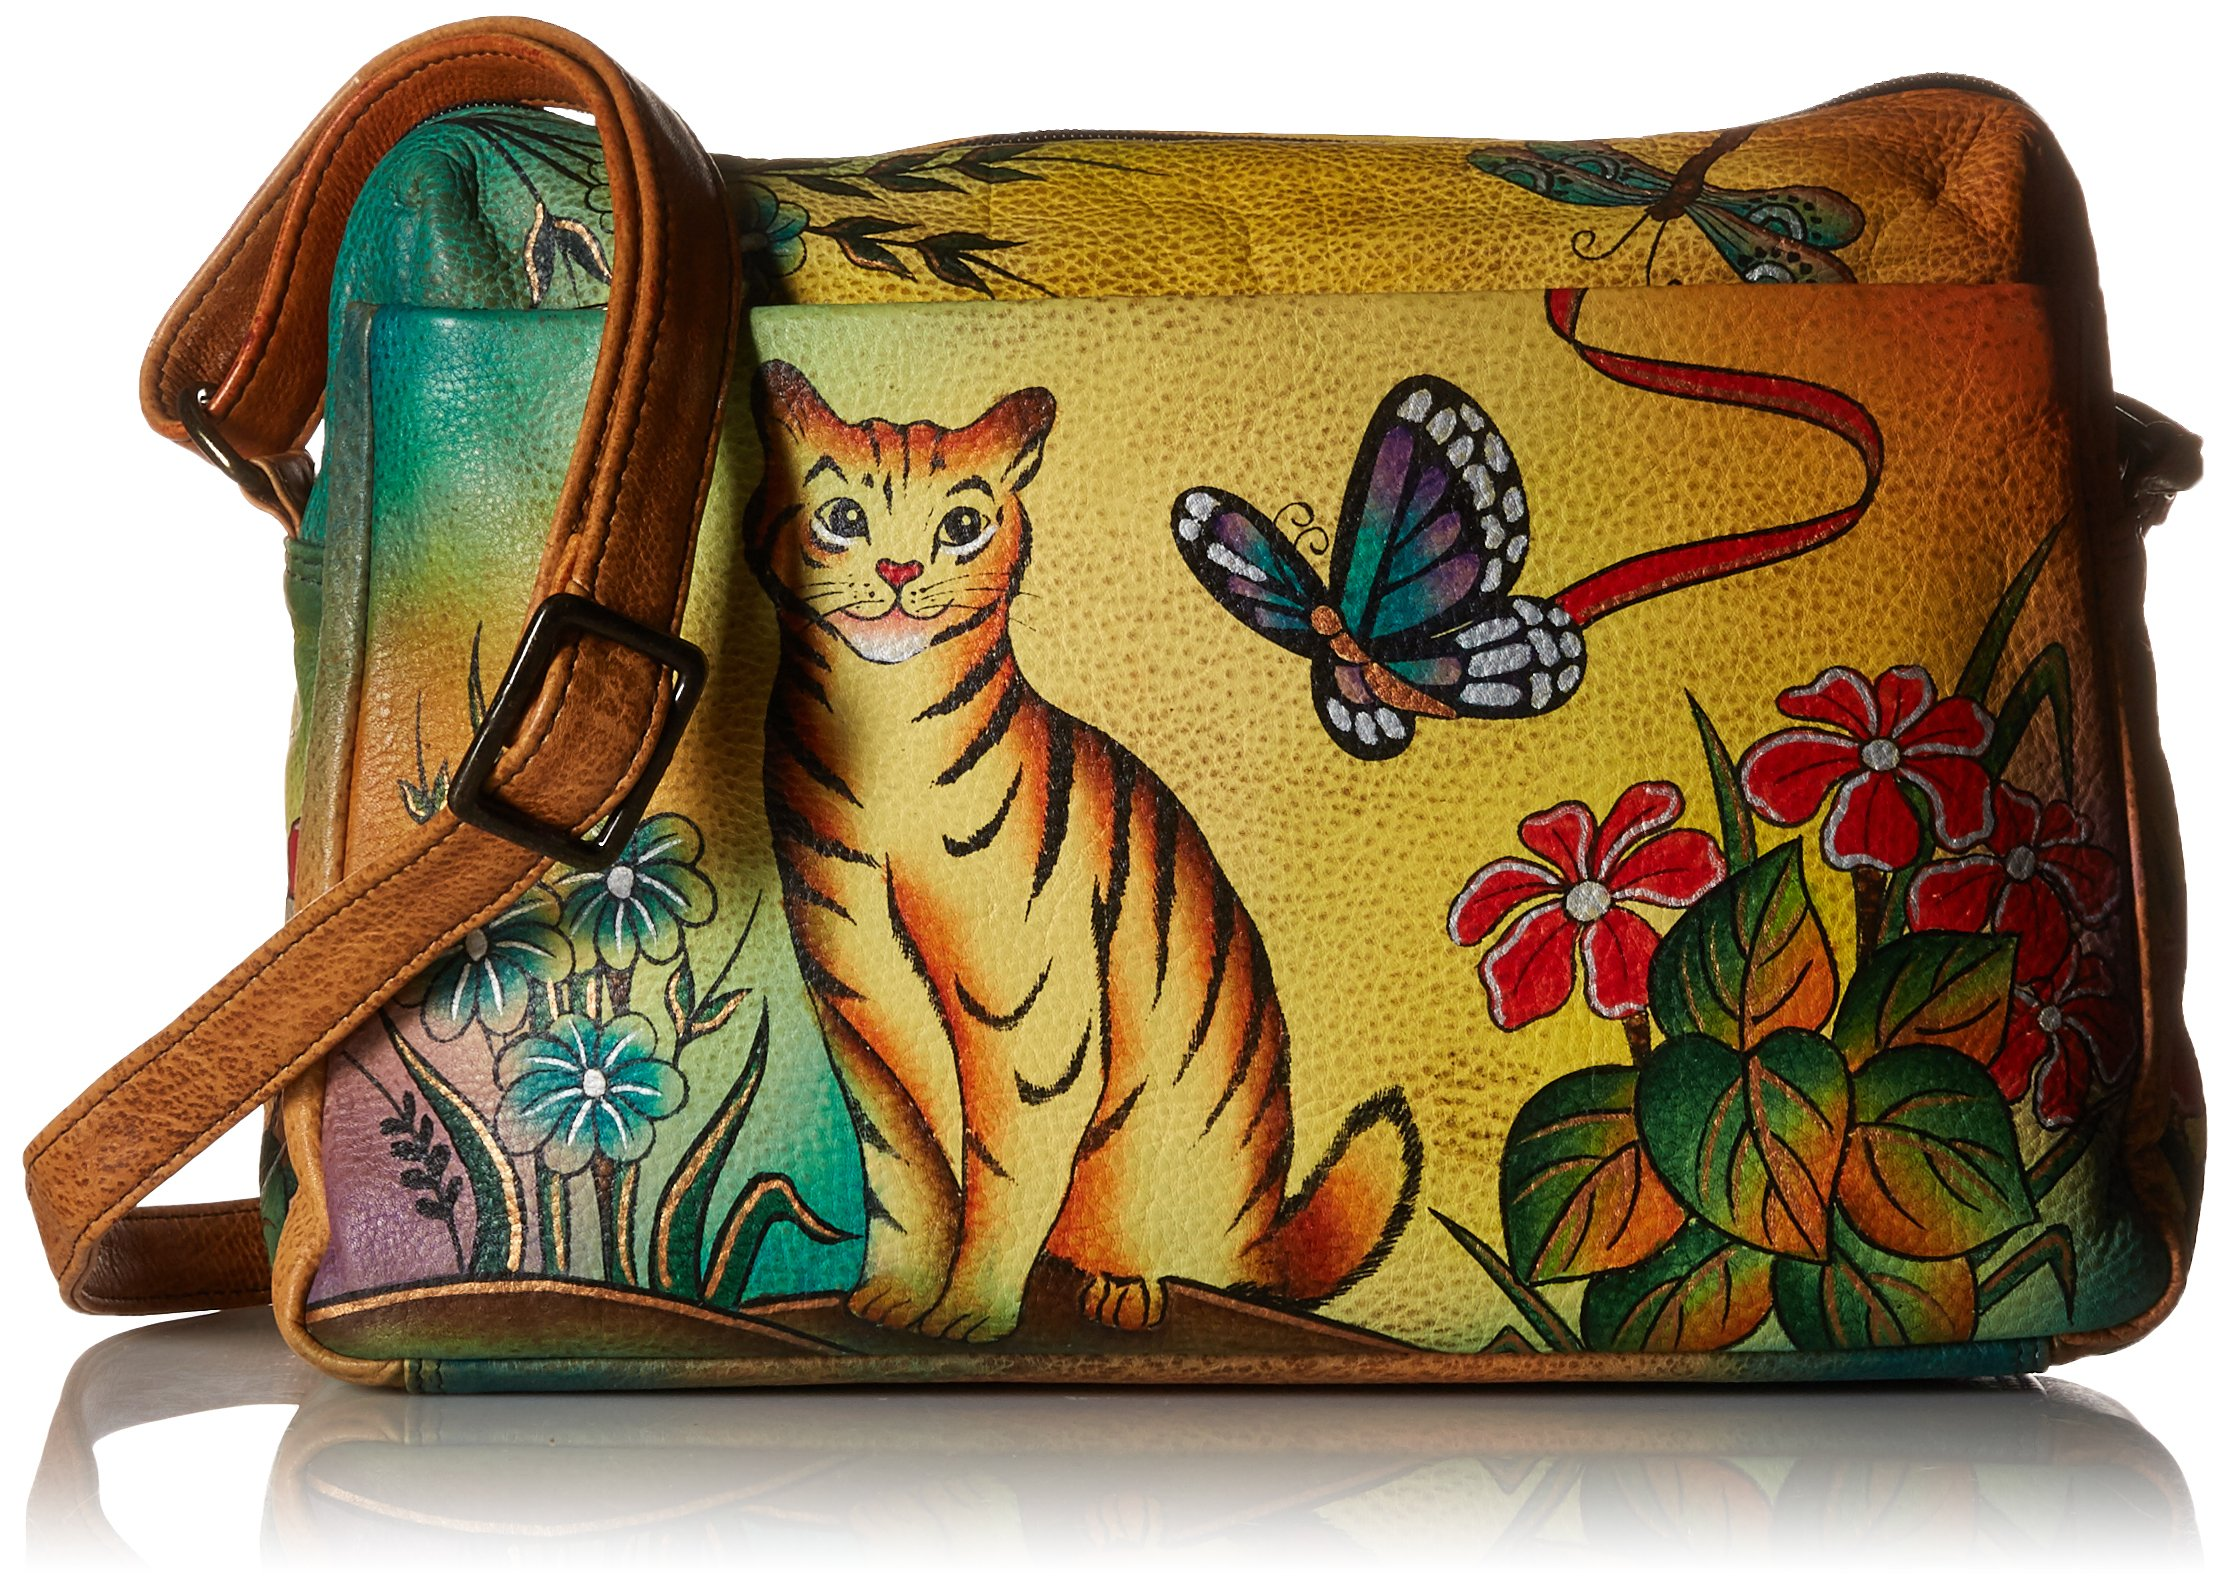 Anuschka Anna Handpainted Leather Medium Satchel Organizer, Cat